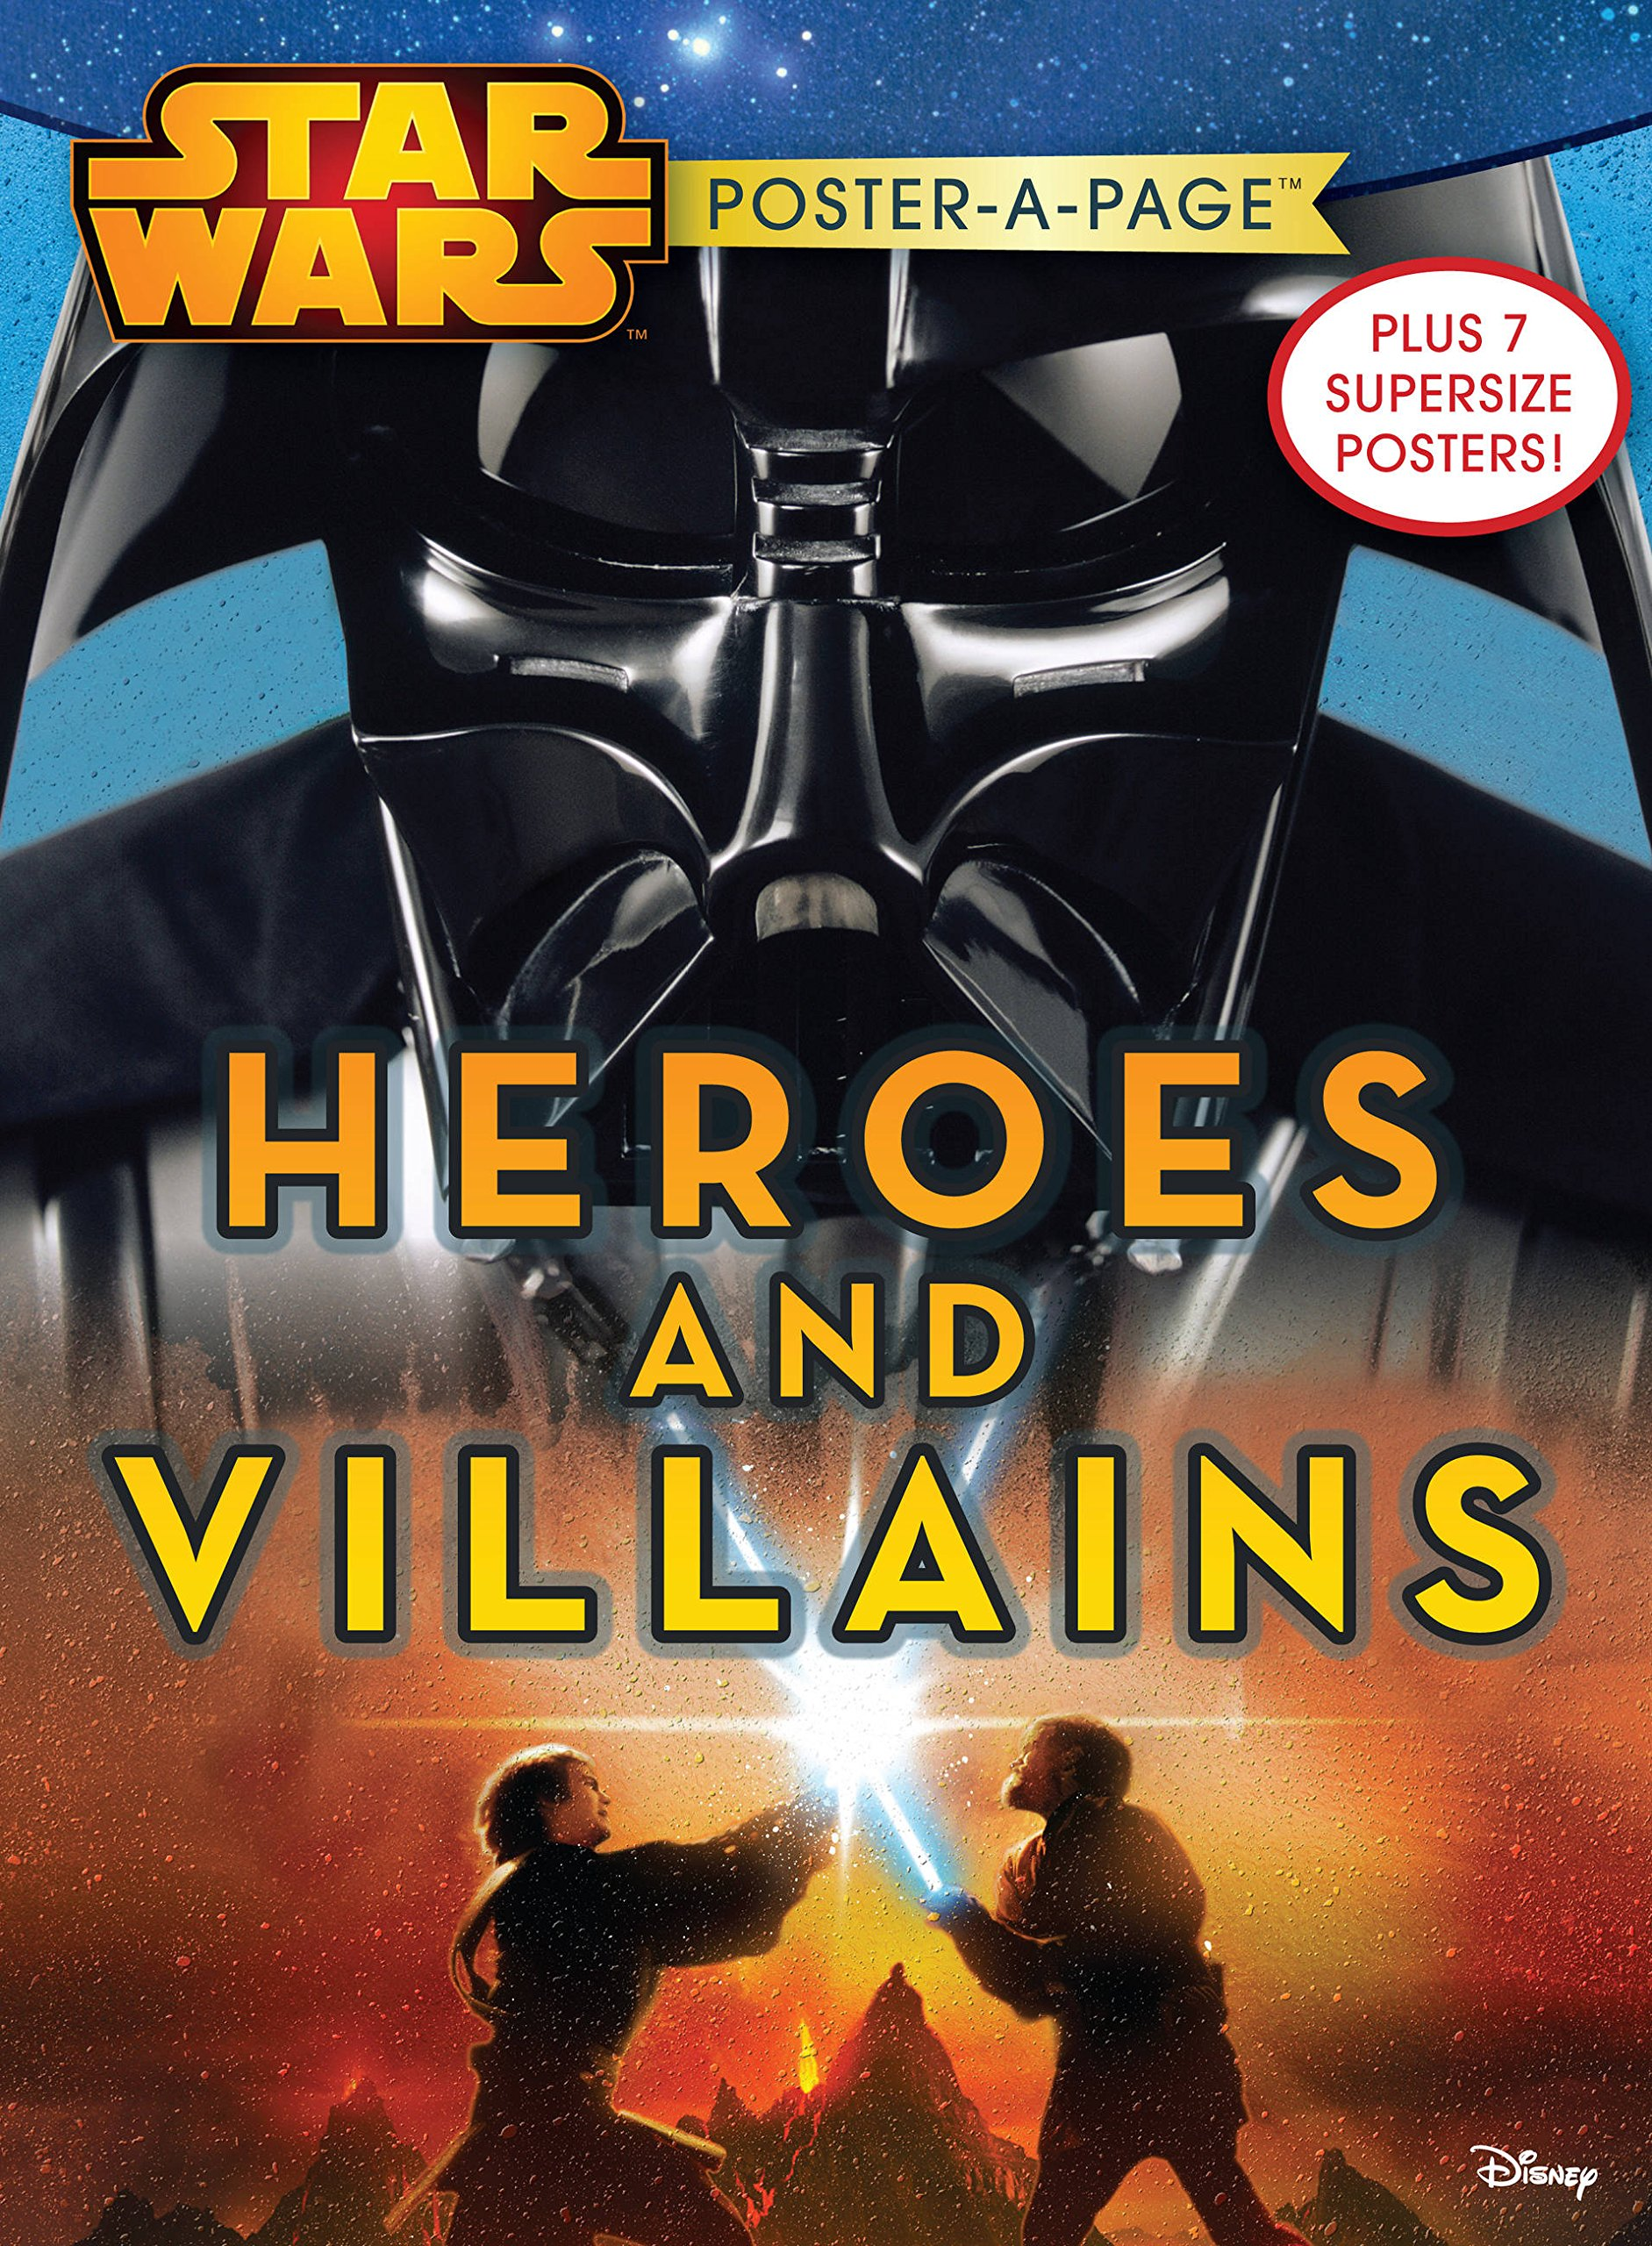 Star Wars Poster-a-Page: Heroes and Villains